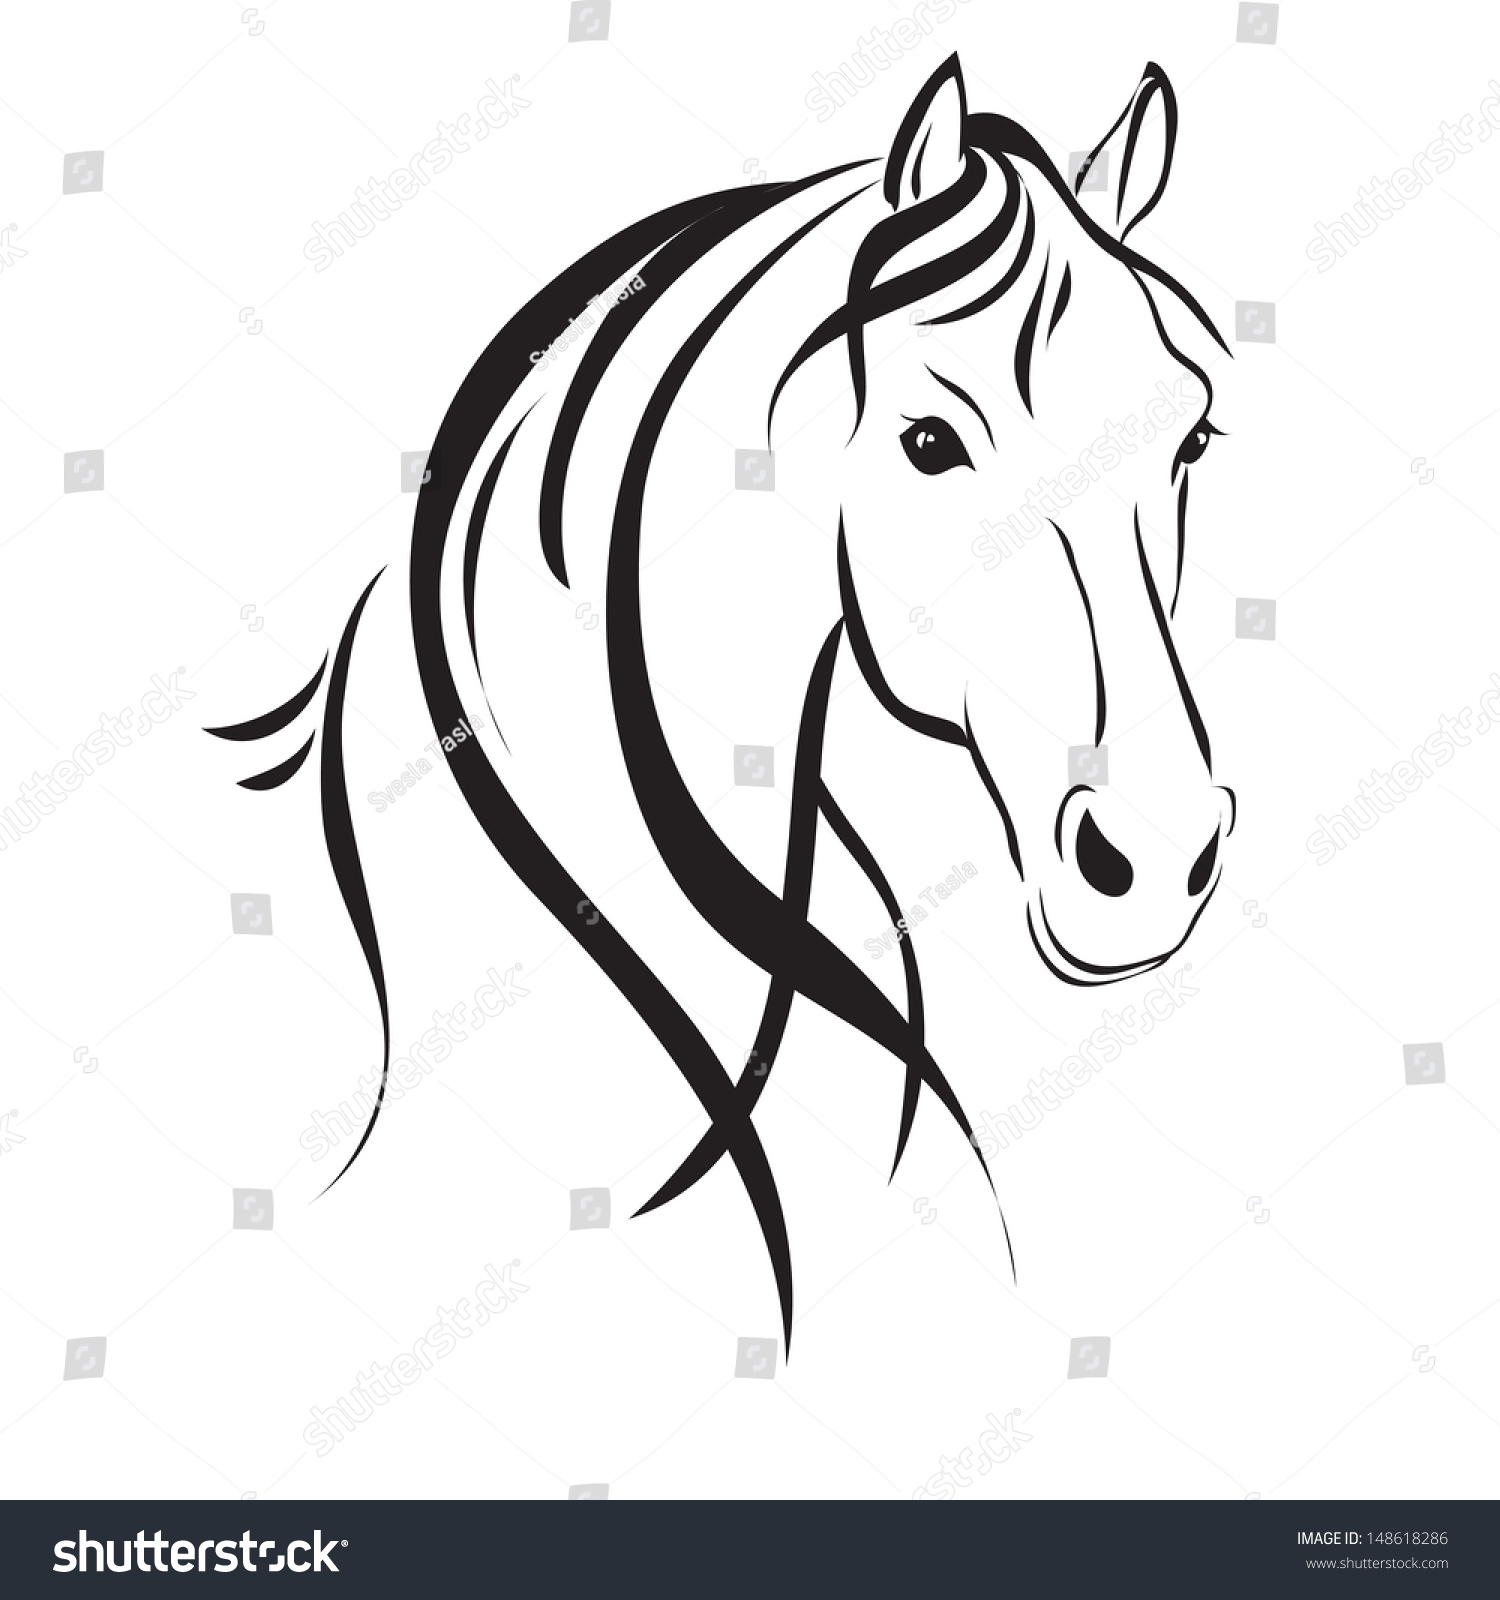 Line Drawing Horse : Line drawing horses head on white stock vector